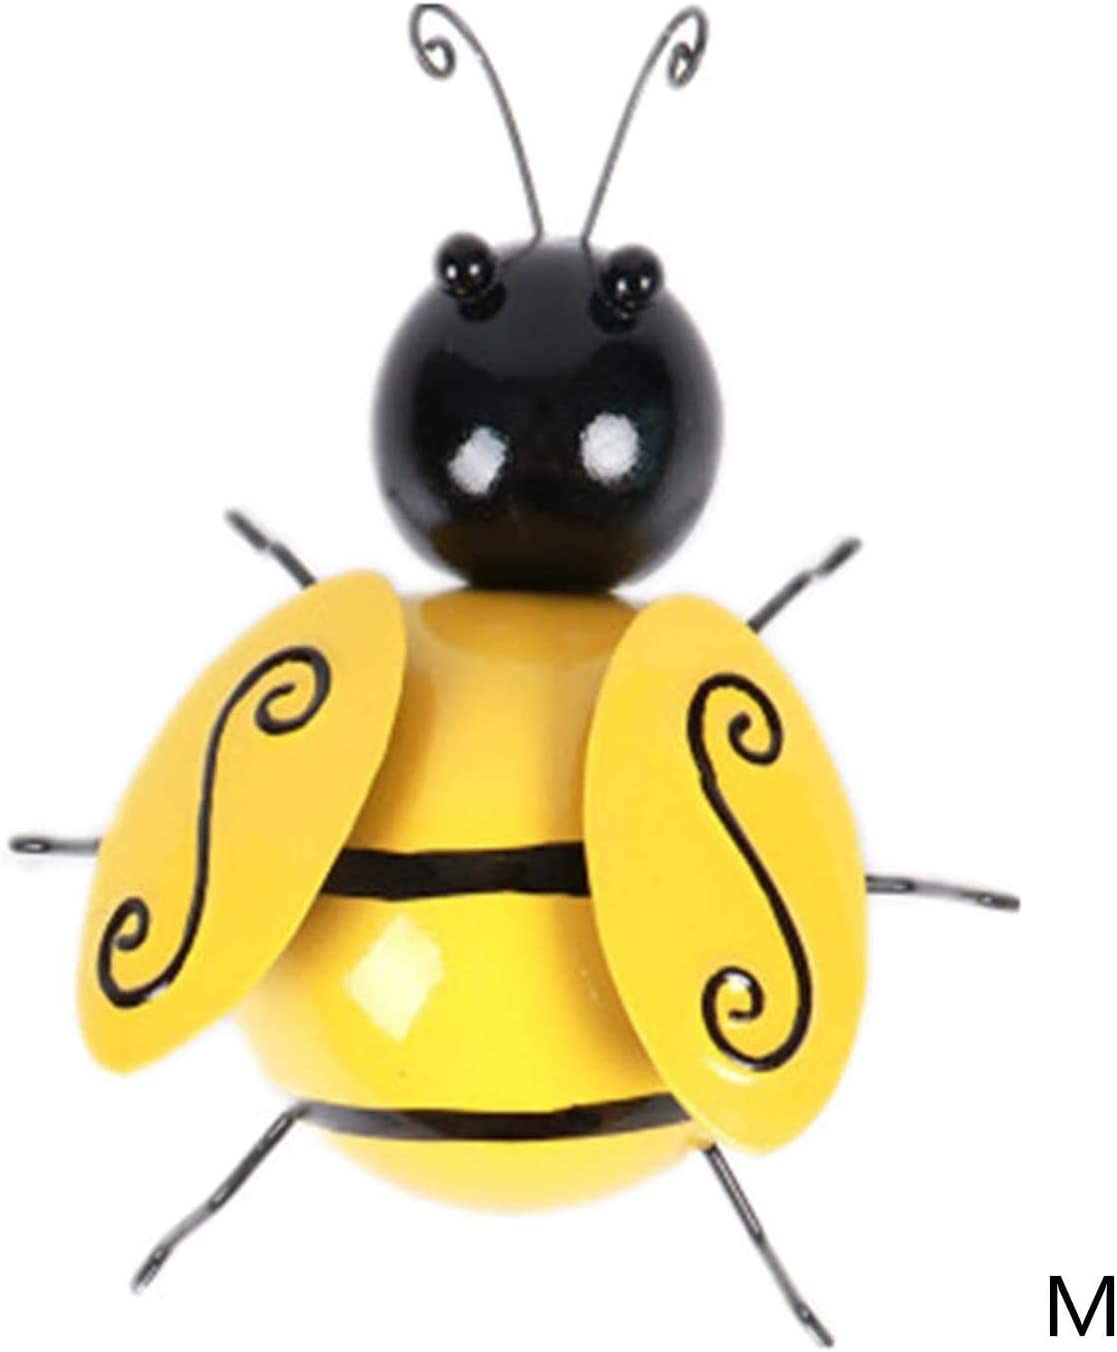 Yellow, 4PC - 2S 1M 1L Garden Accents Yard Fence 3D Iron Art Sculpture Ornaments Bumble Bee Decorations Lawn Bar Bedroom Living Room Coffee Shop Wall Hanging Bumblebee Art Decoration